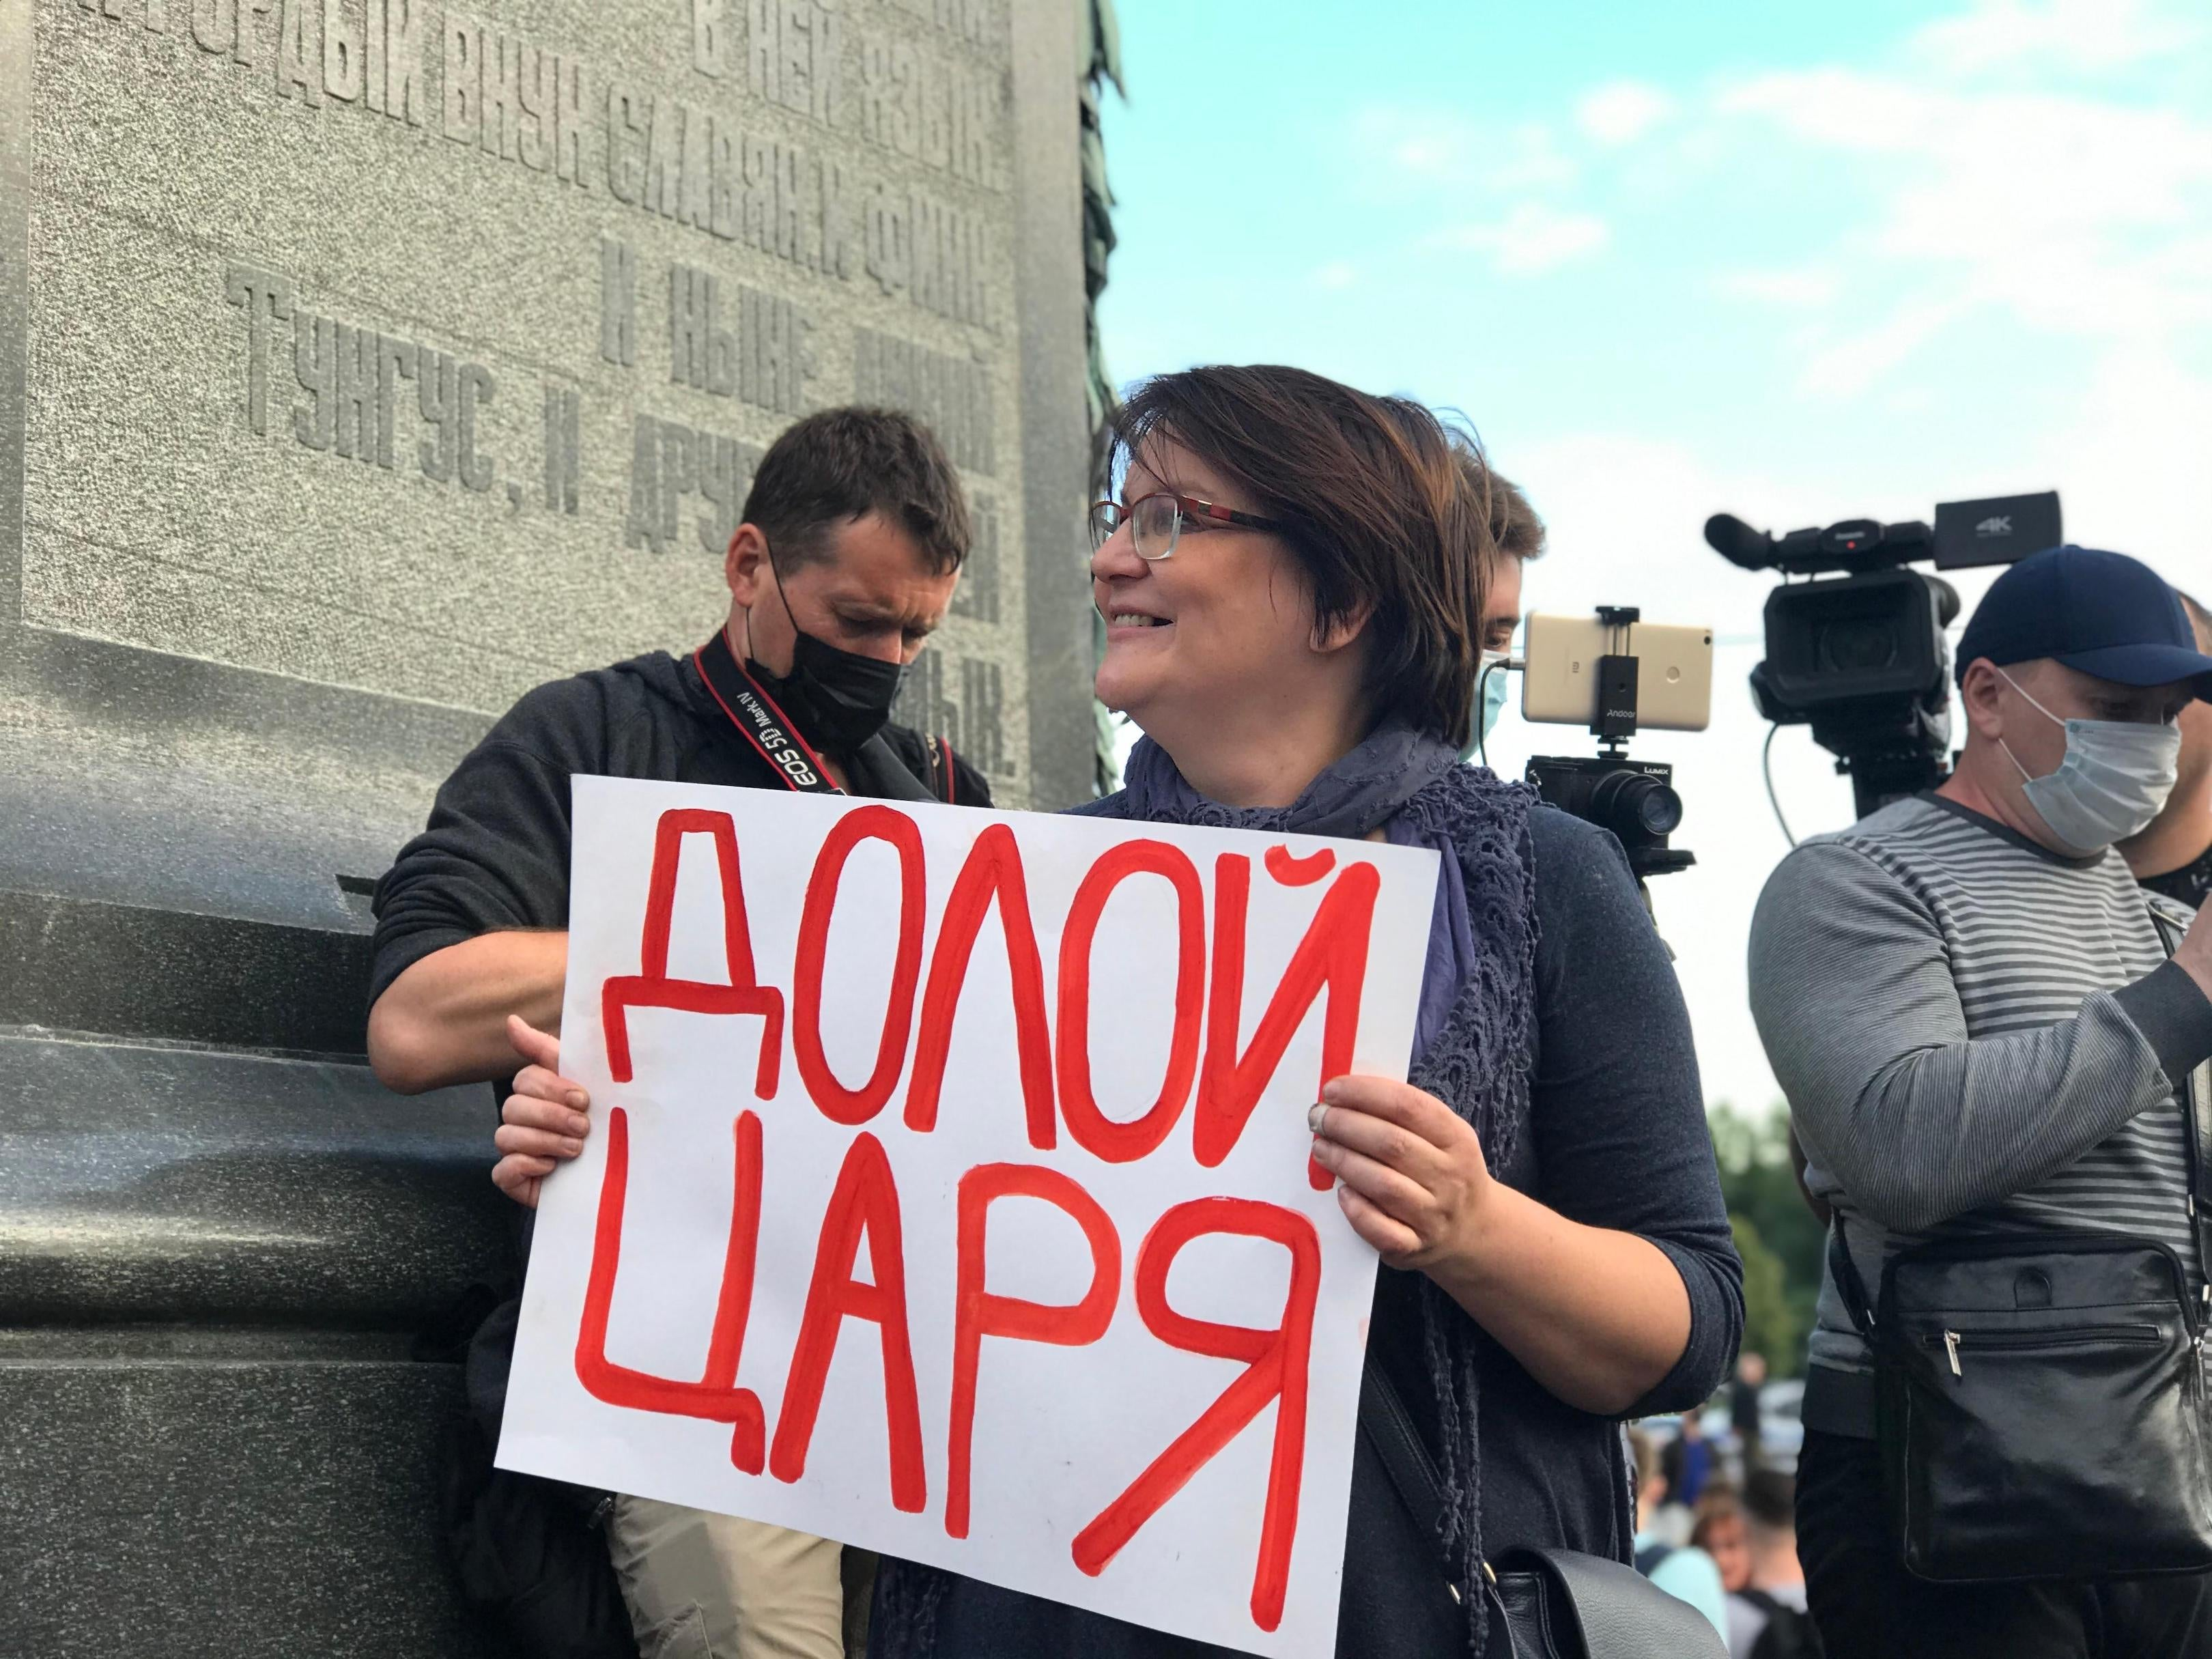 Russia: Activist Facing Charges Over Peaceful Protest